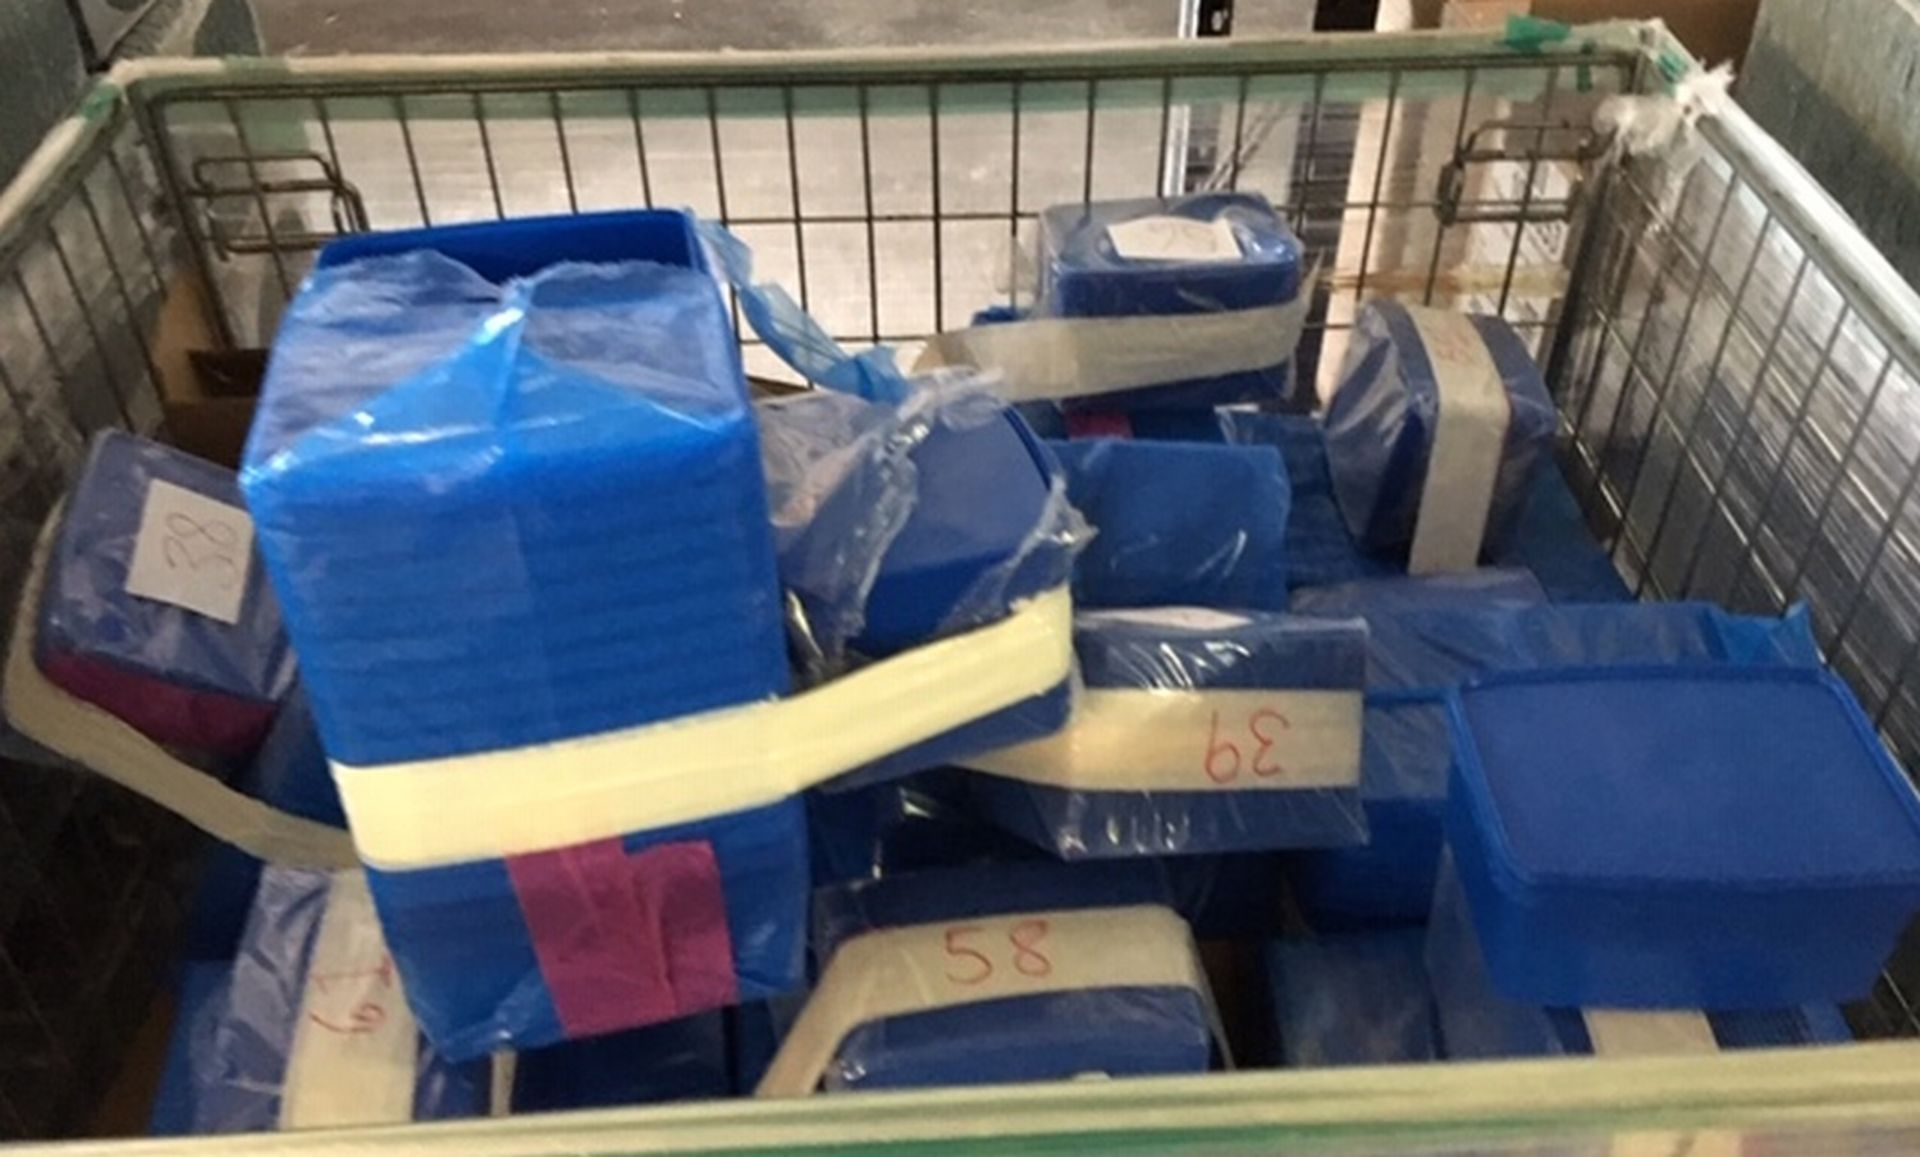 Lot 119 - Steel Cage of approximately 600 Lidded Plastic Containers 190mm x 150mm x 95mm.